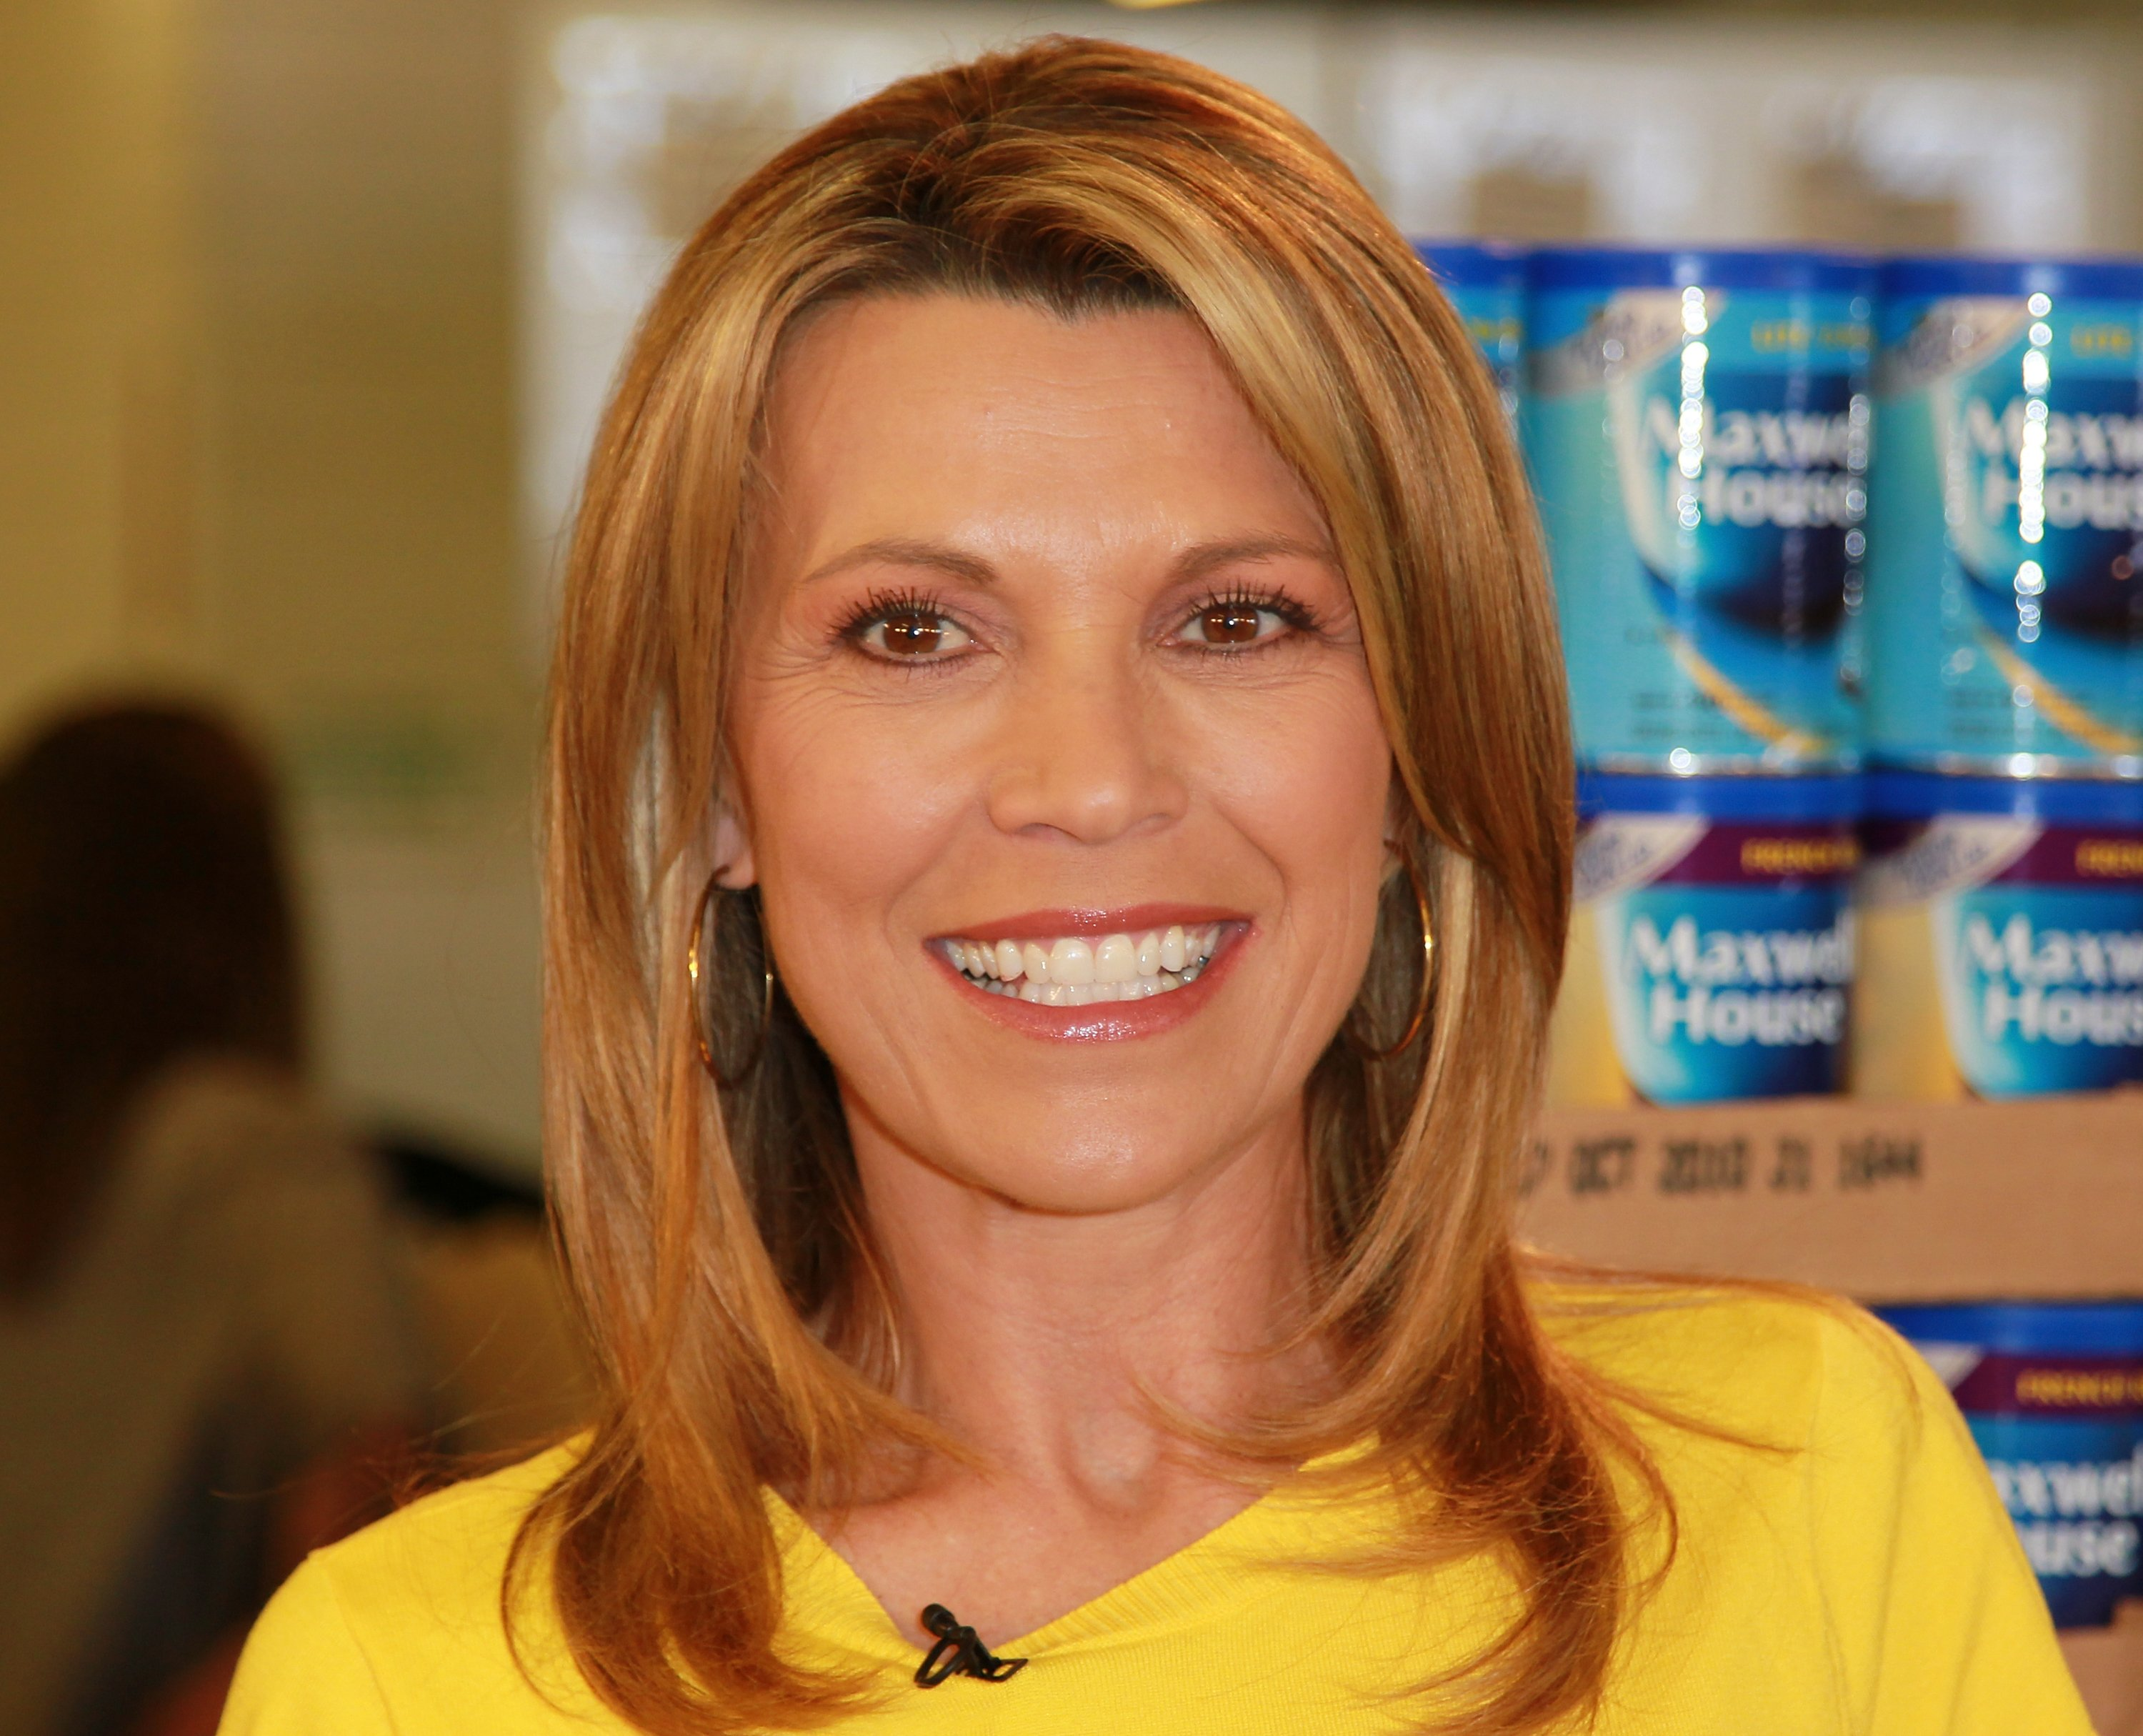 Vanna White on May 13, 2010 in Los Angeles, California | Source: Getty Images